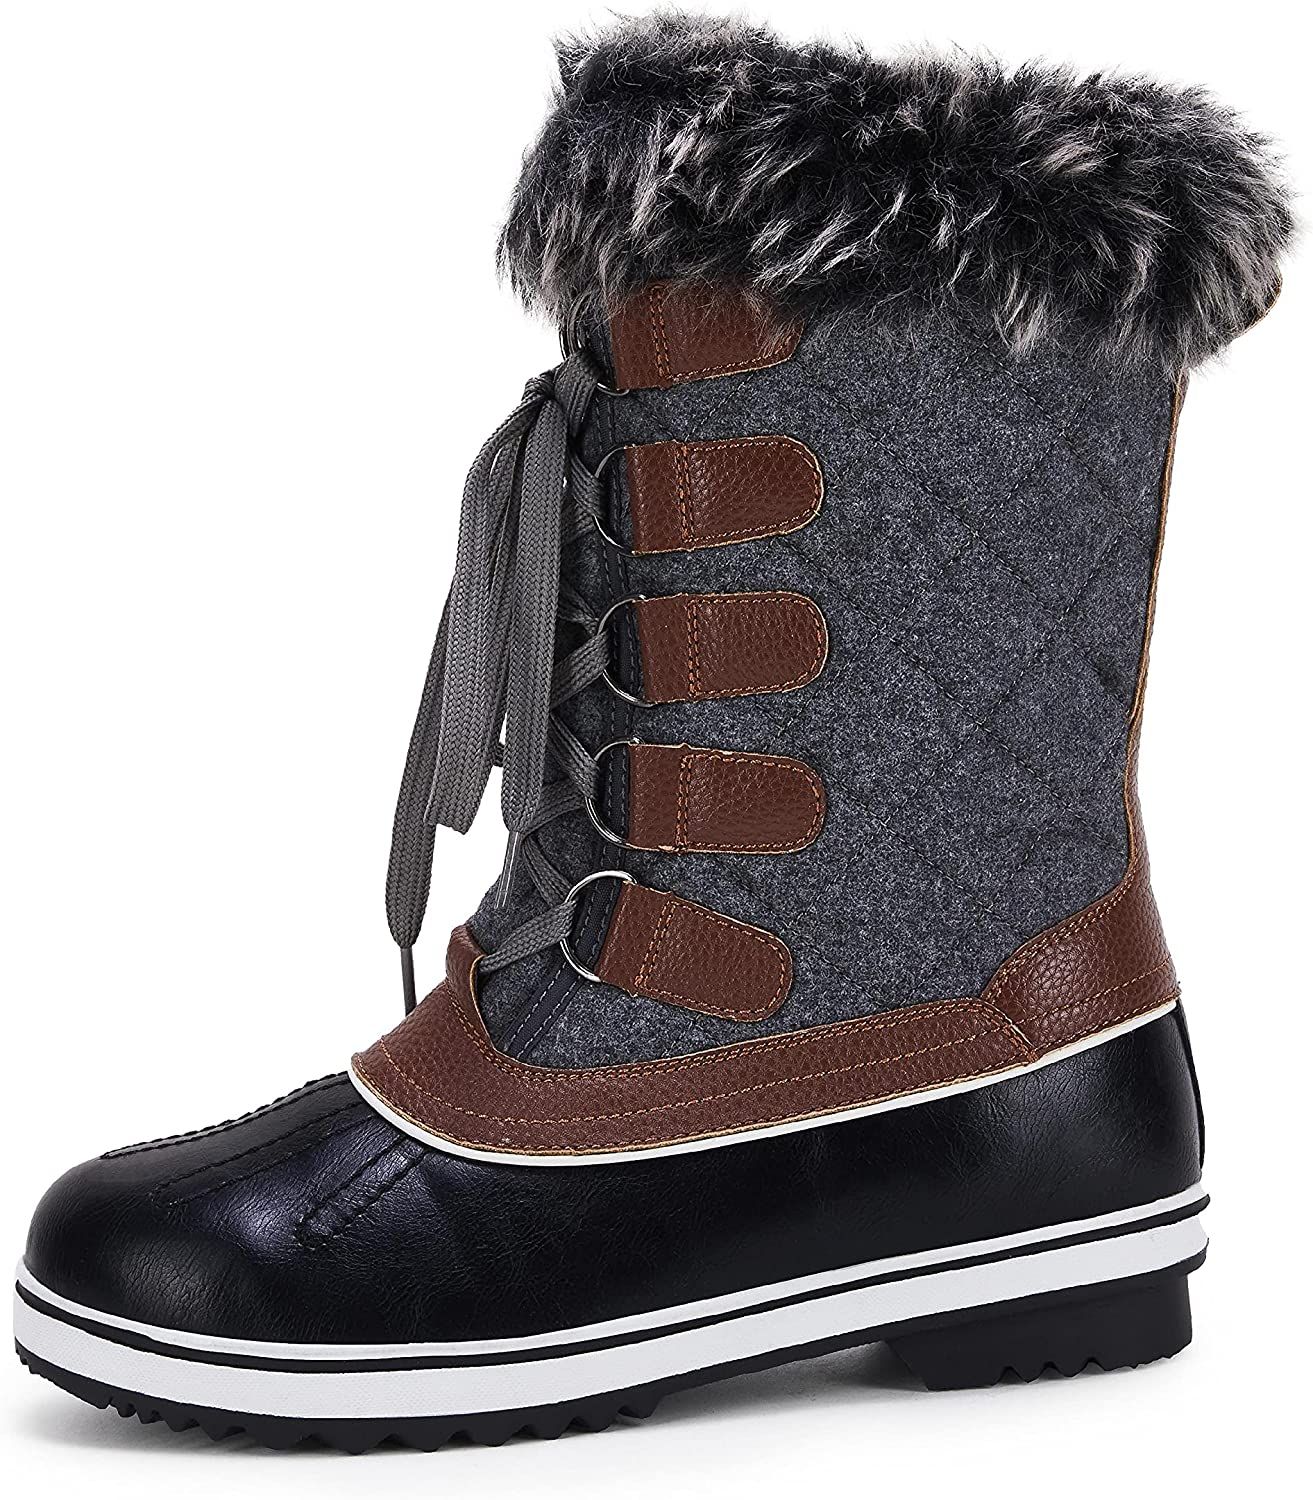 LAICIGO Women's Mid-Calf Snow Boots Faux Fur Lace-up Waterproof Insulated Quilted Mesh Winter Warm Boots